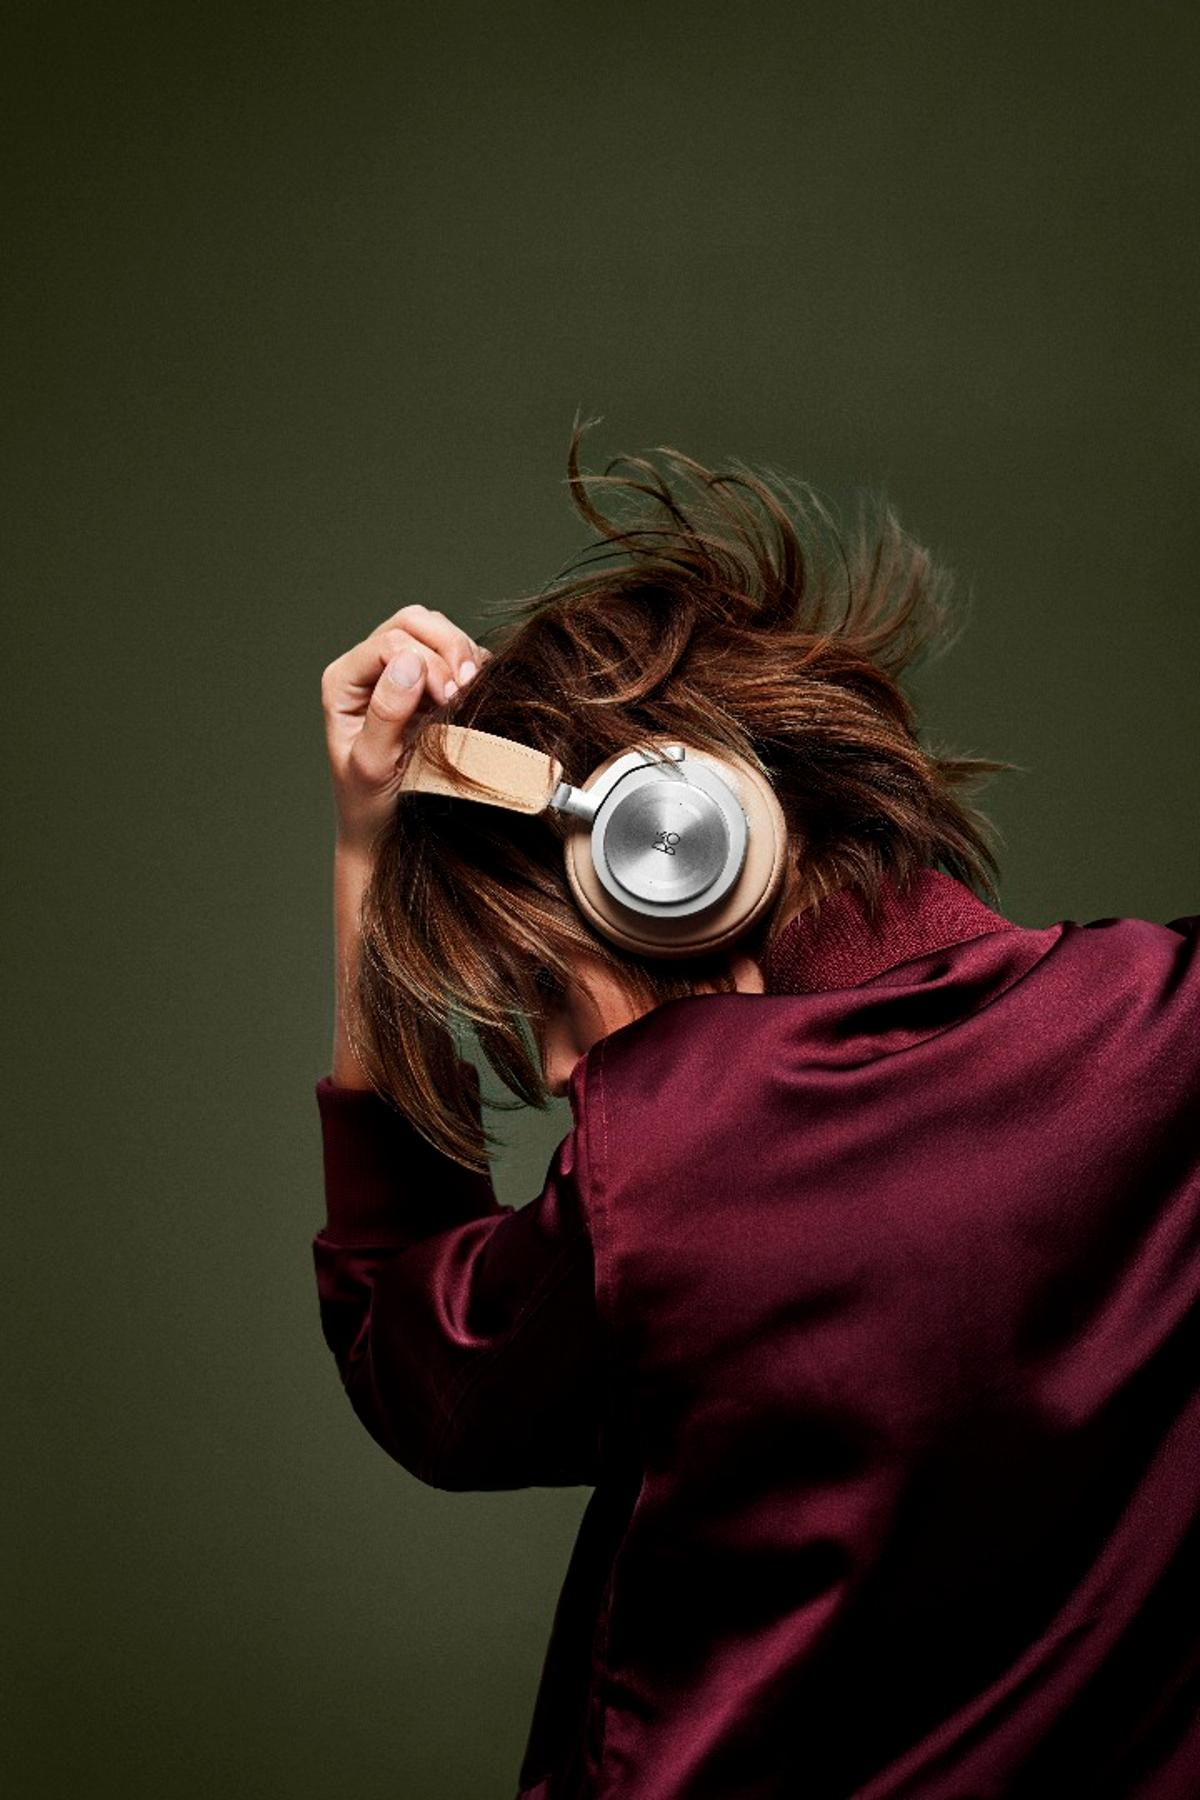 The BeoPlay H7 premium wireless headphones features Bluetooth 4.1 with support for aptX and AAC codecs for the promise of CD-quality music on the move